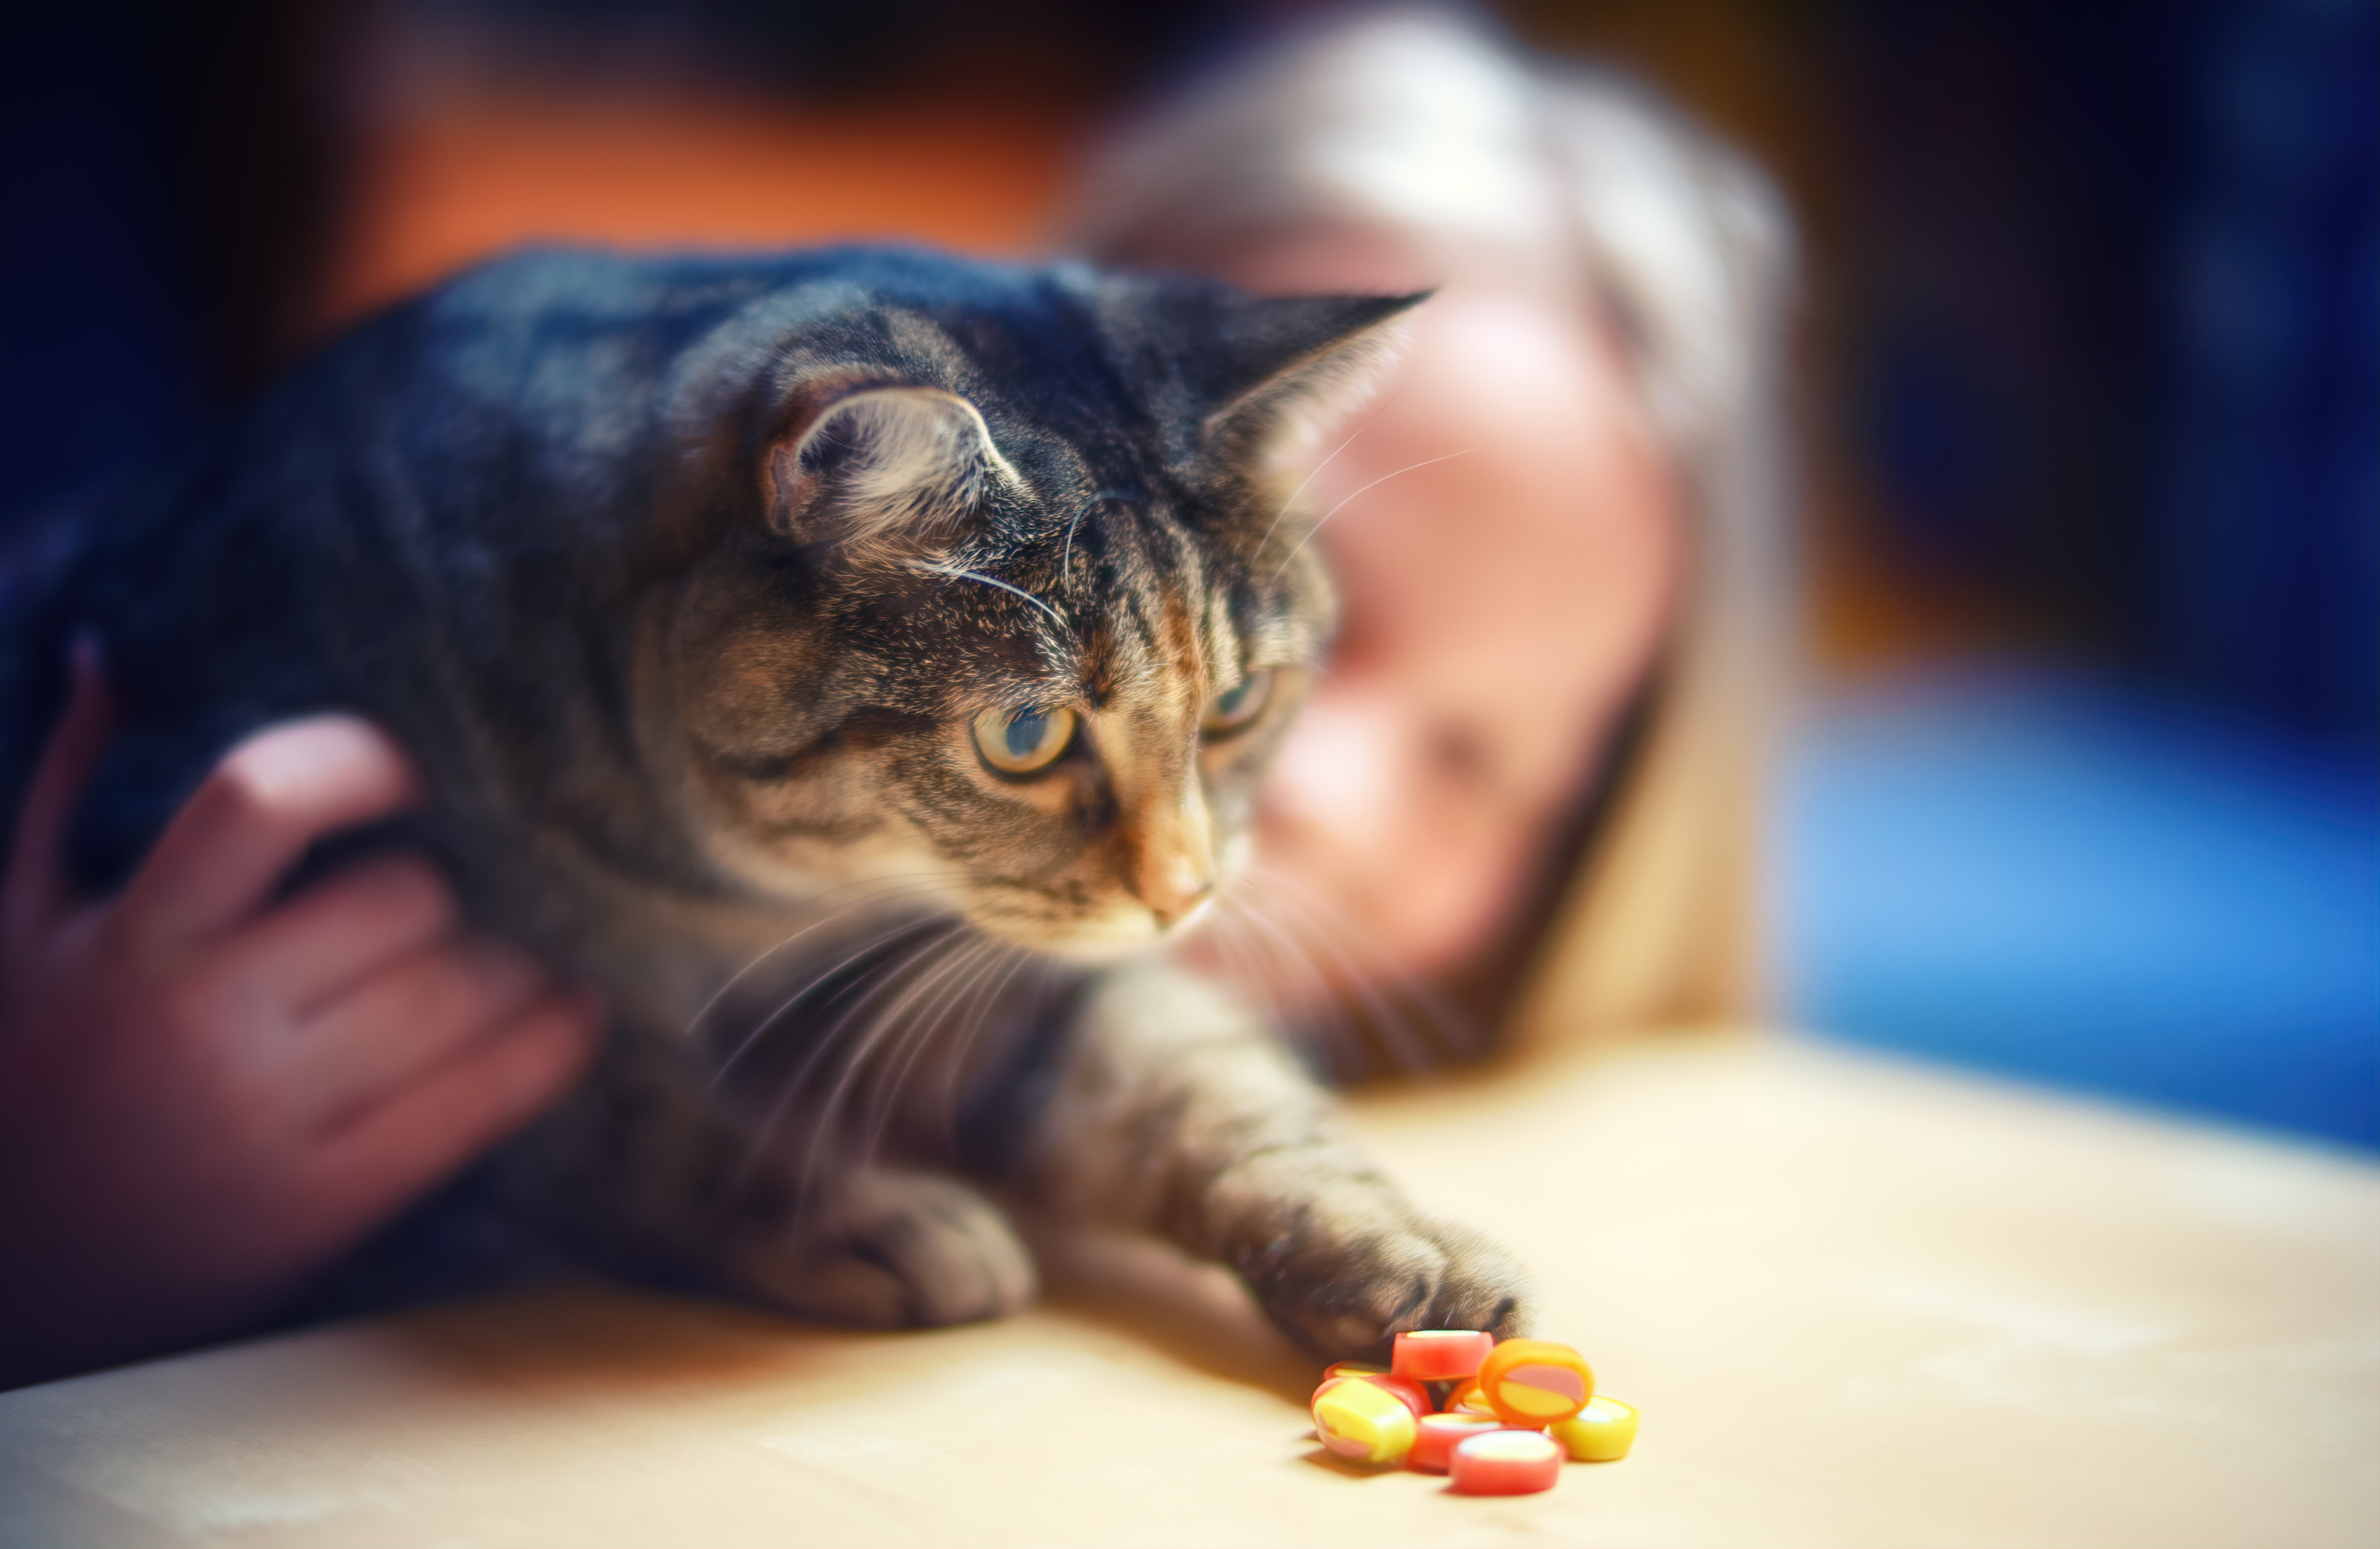 sweet tooth,cat,eyes, candy,girl,cute